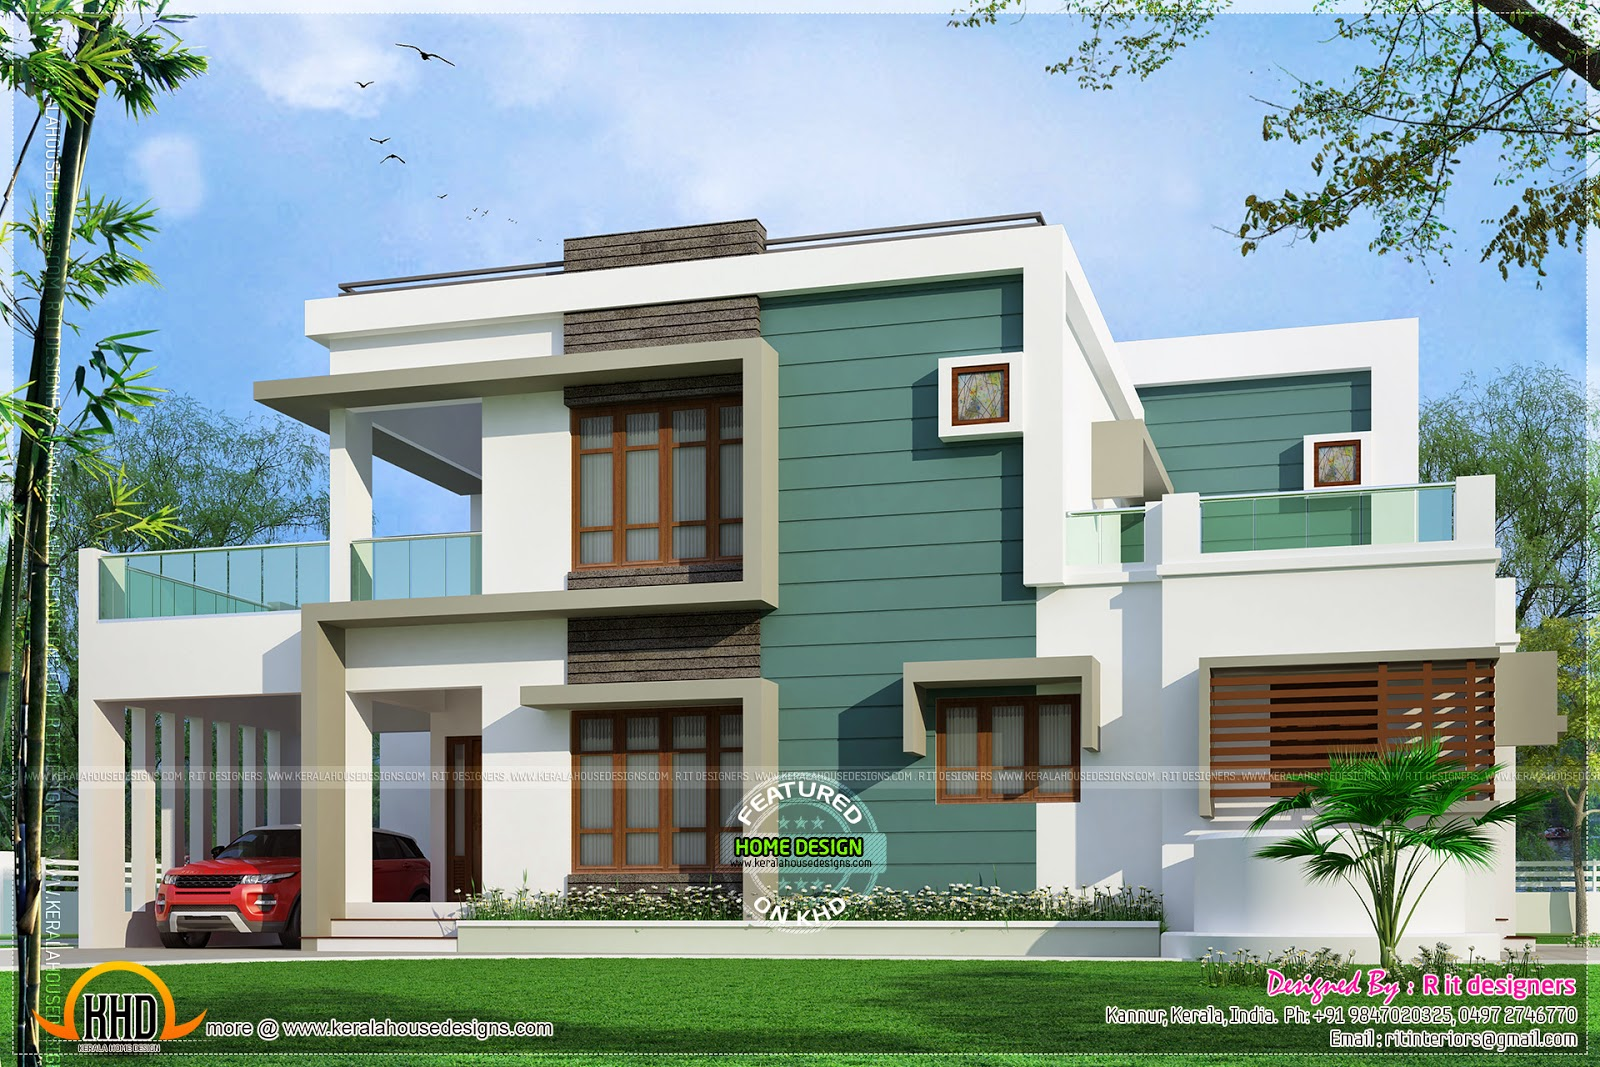 Kannur home design kerala home design and floor plans for House designer plan